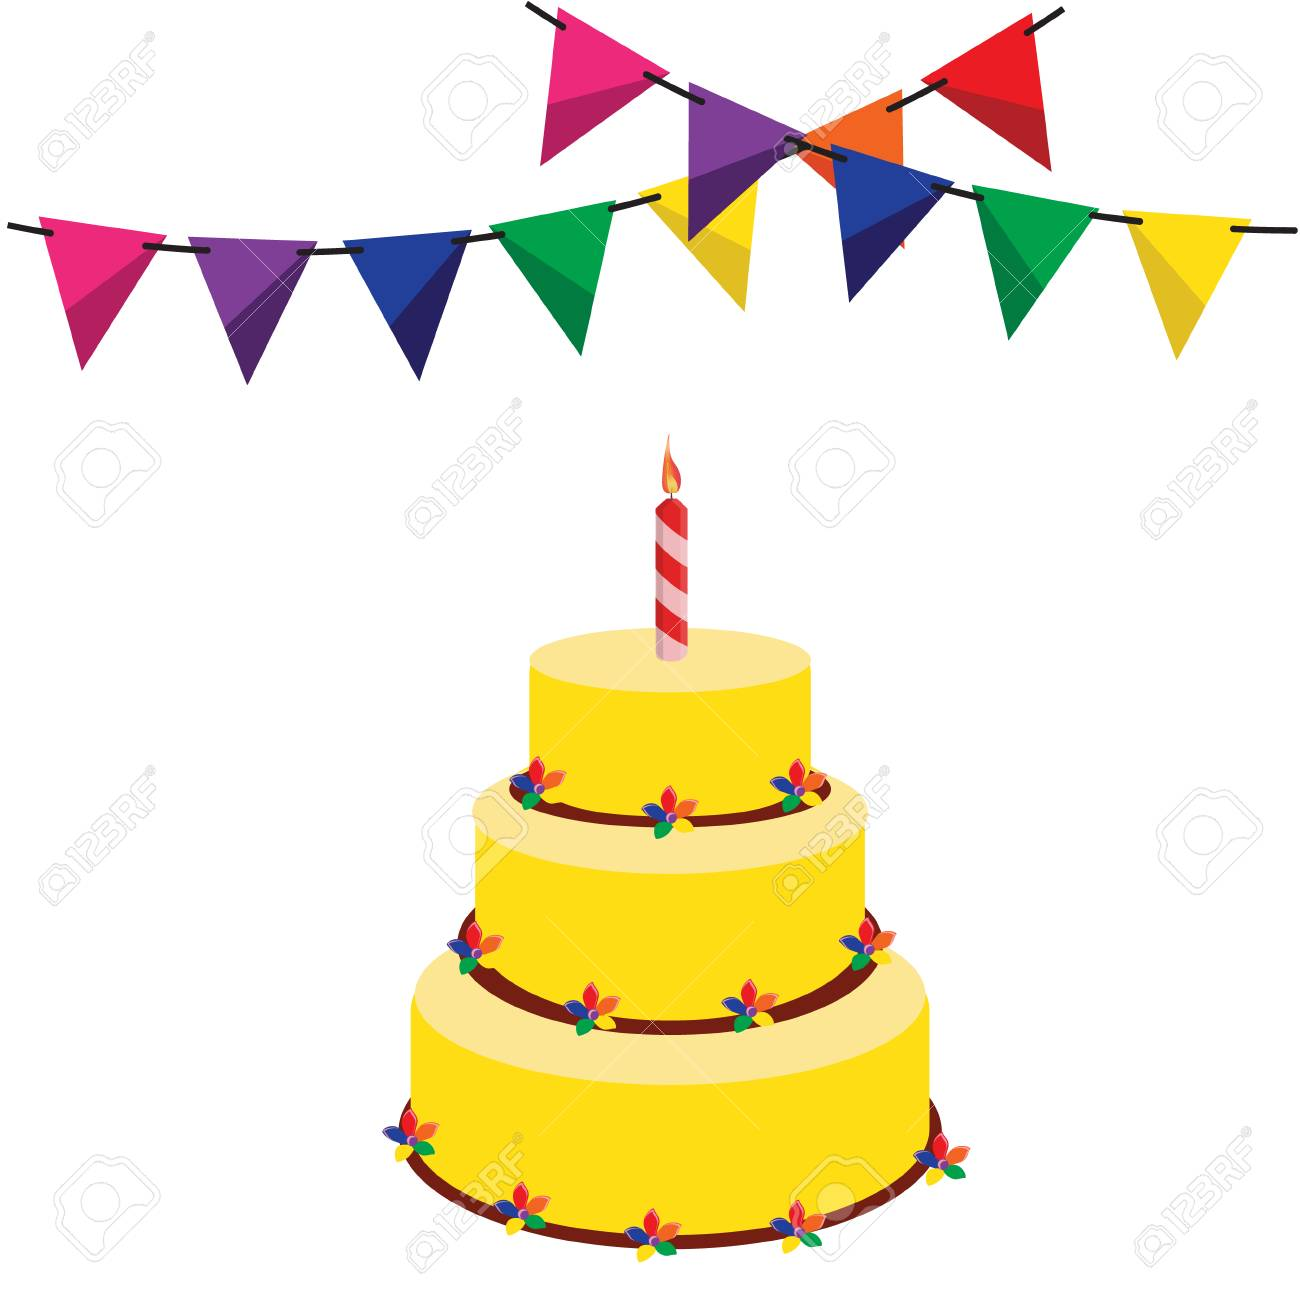 Colorful Bunting And Garland And Birthday Cake Raster Illustration